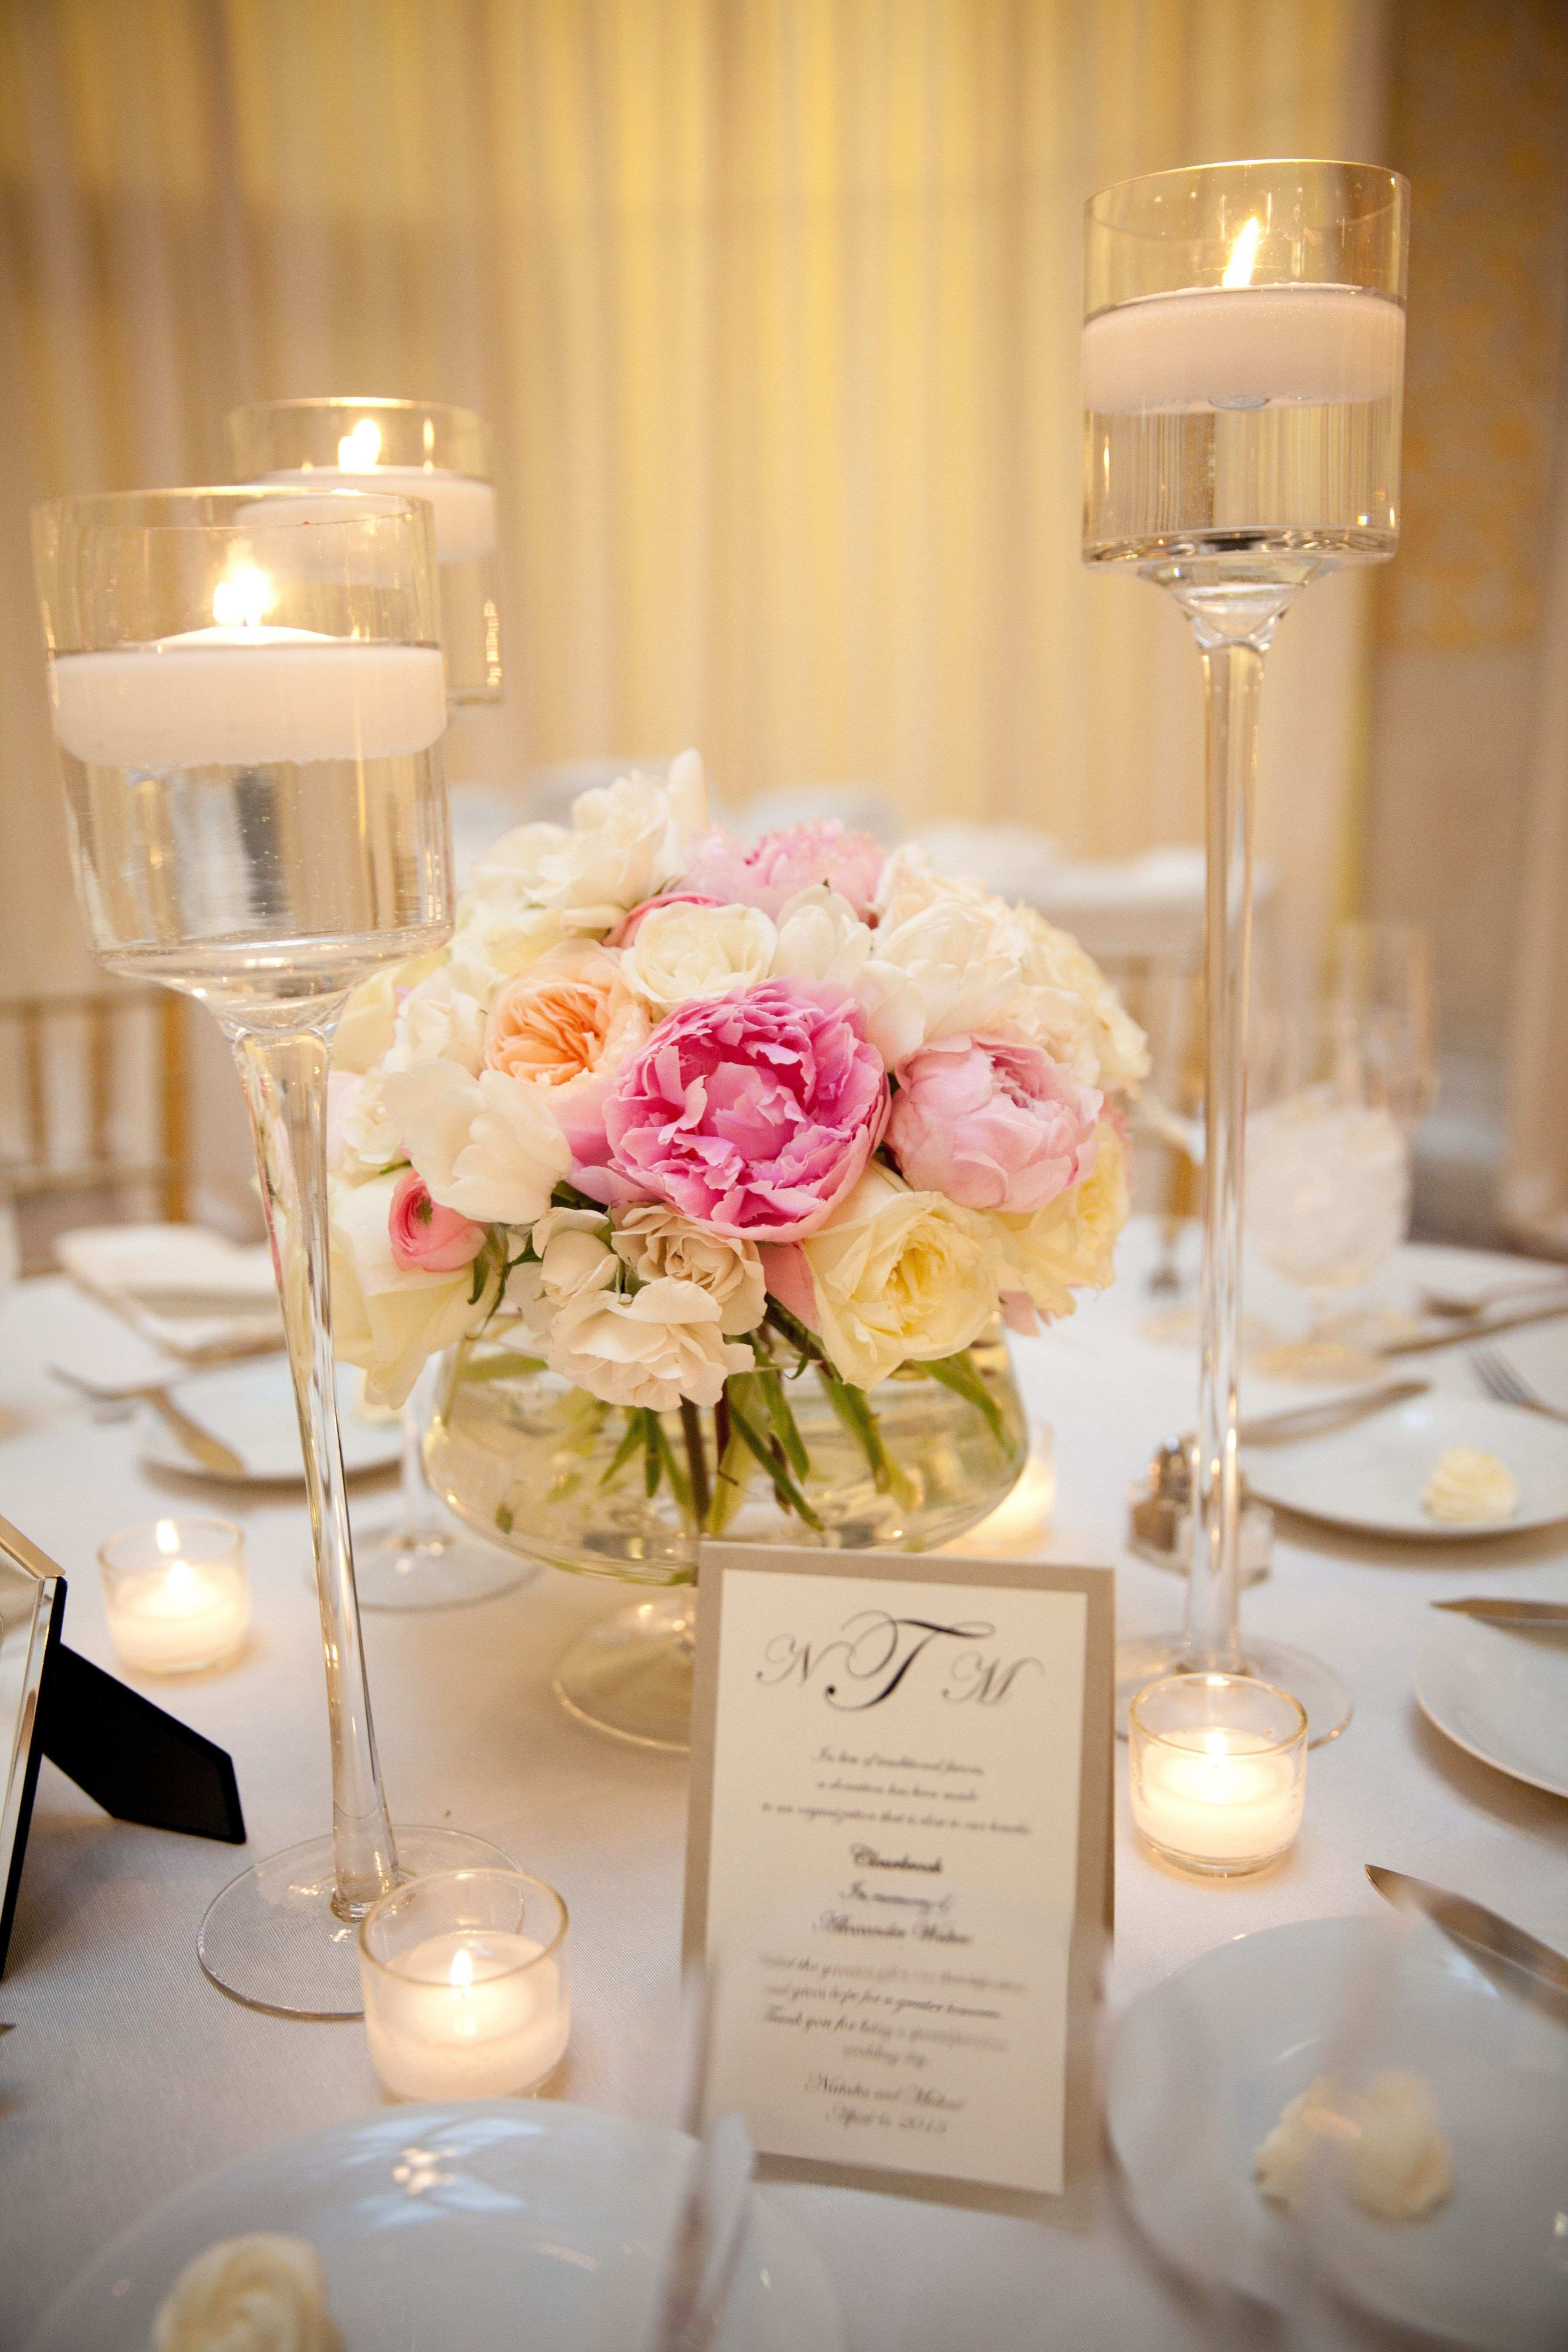 Table Awesome Wedding Table Flowers Hd Wallpaper Wedding Table